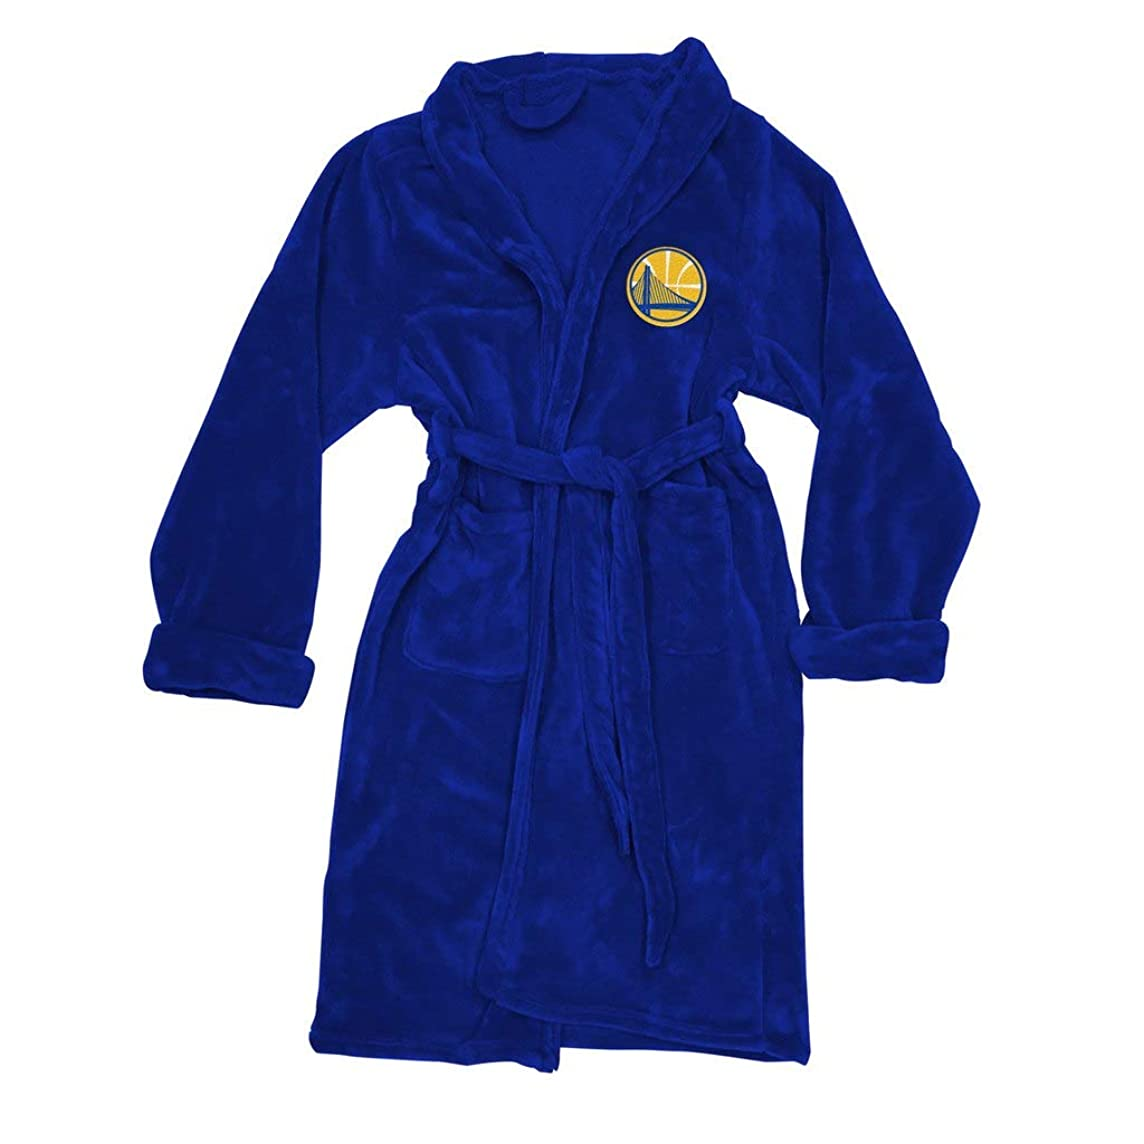 The Northwest Company Officially Licensed NBA Golden State Warriors Men's Silk Touch Lounge Robe, Large/X-Large